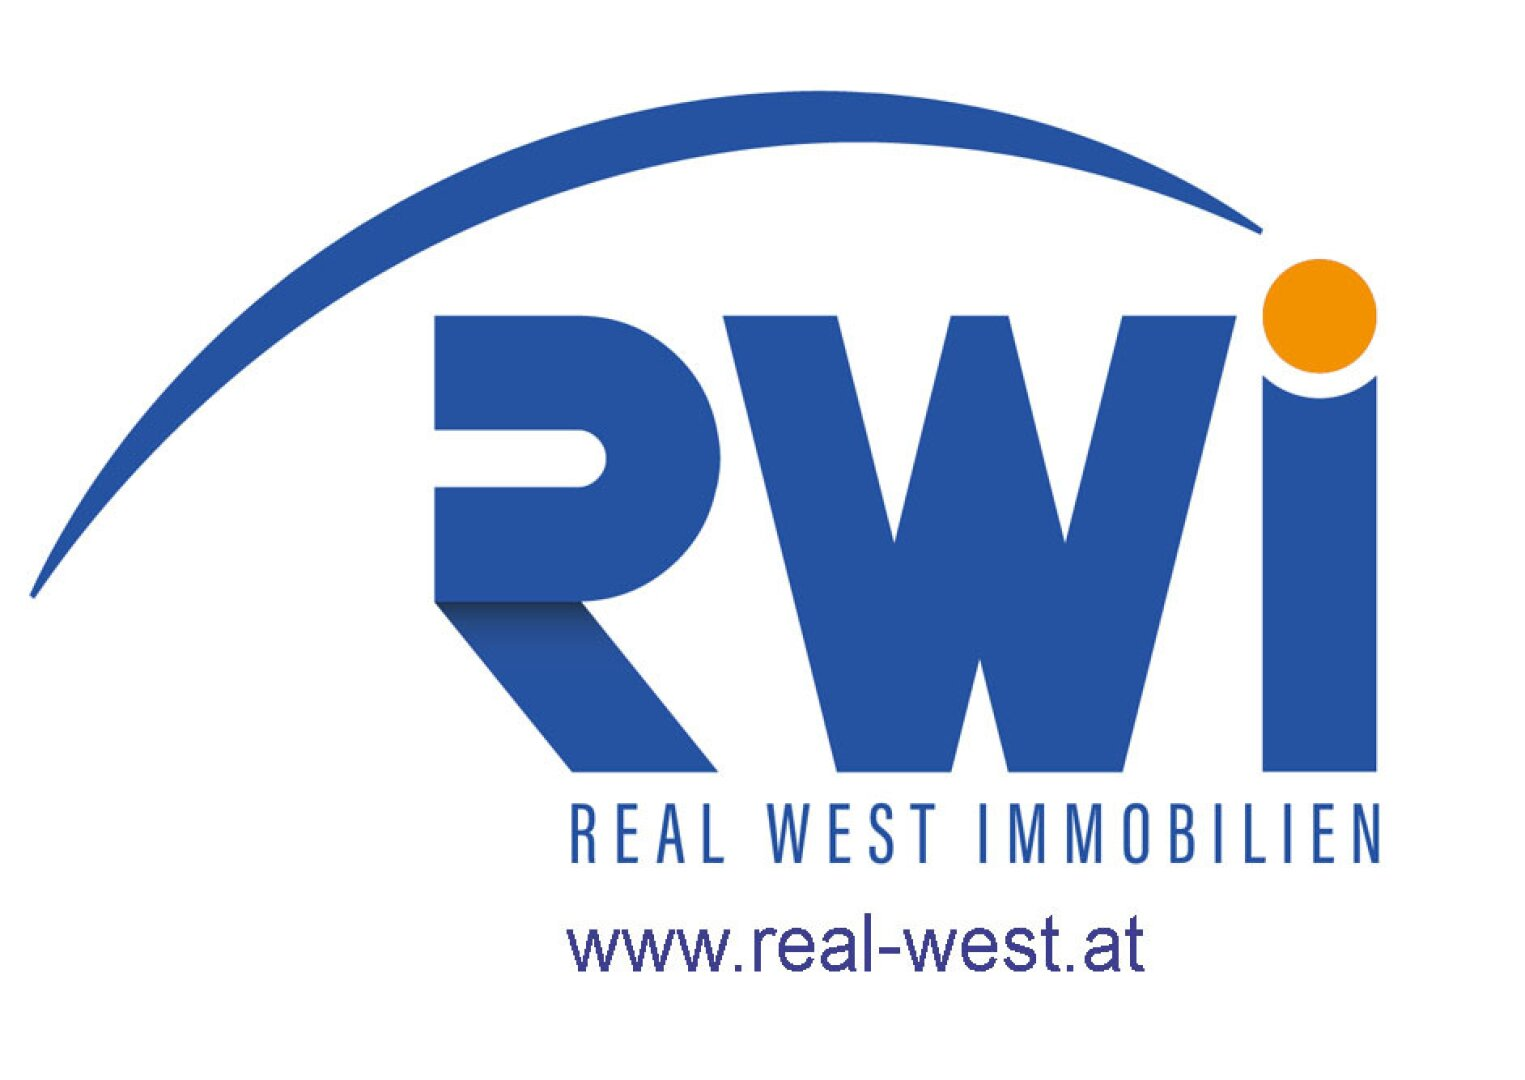 RWI REAL WEST IMMOBILIEN GmbH, Kufstein, www.real-west.at